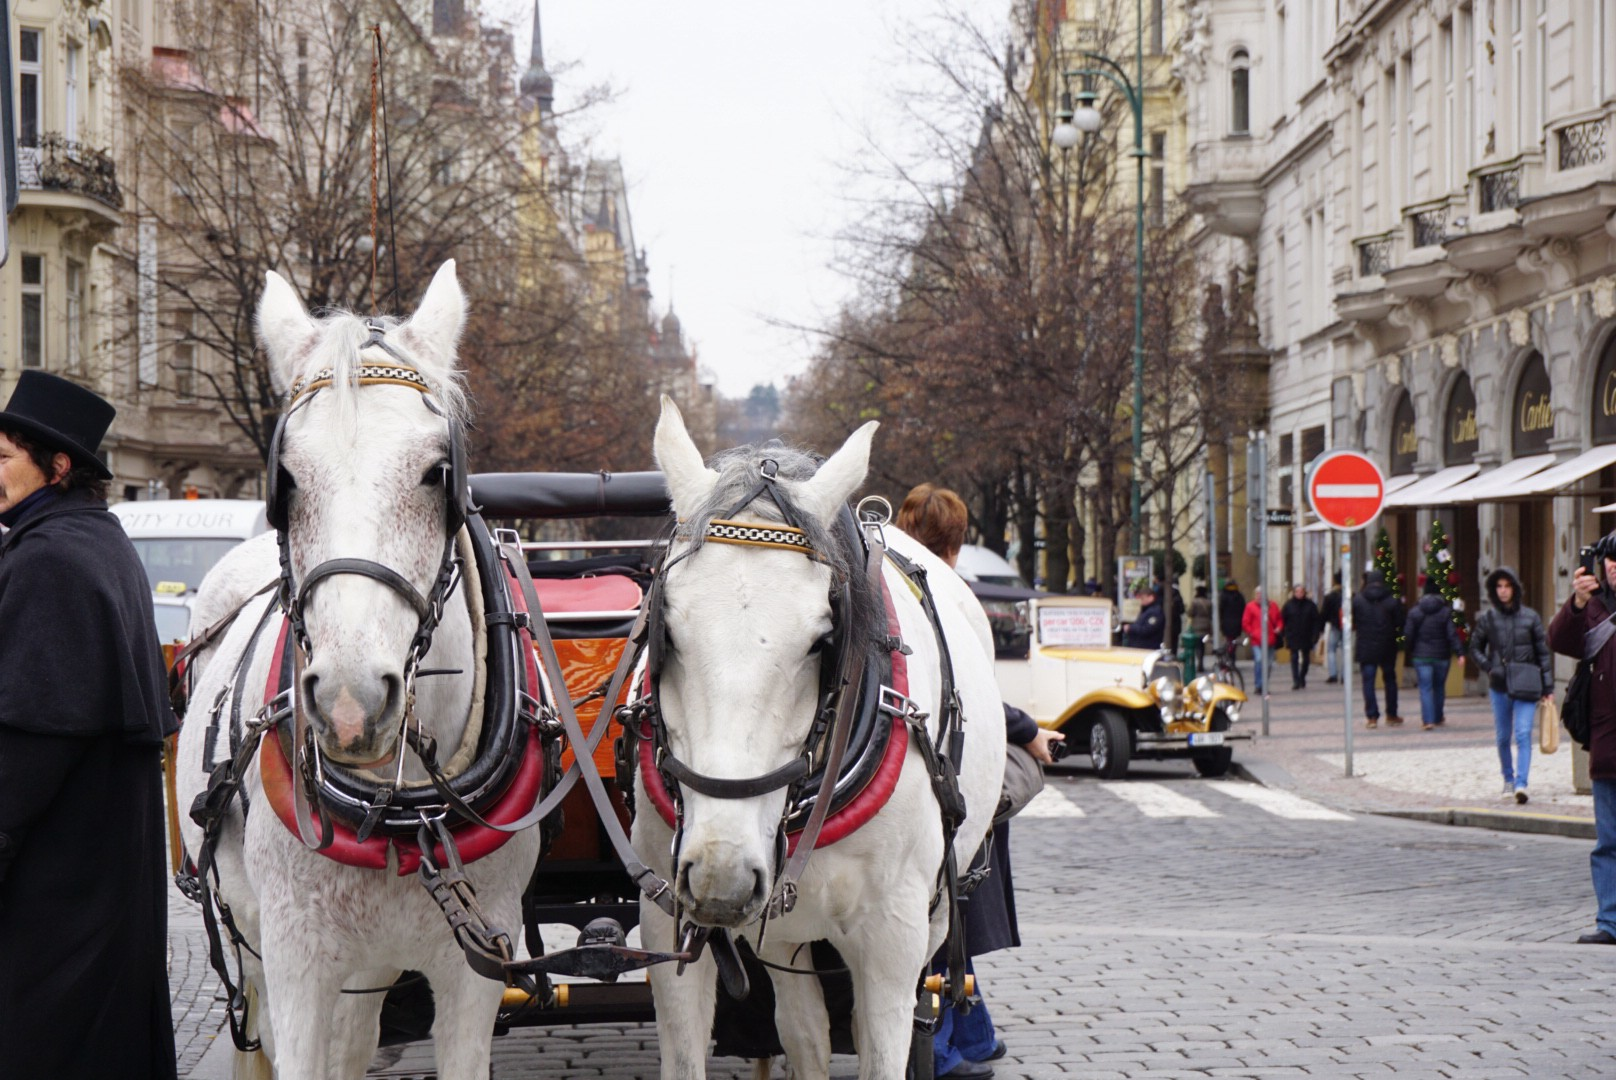 Horse carriages offering tourists a little bit of the old town nostalgia